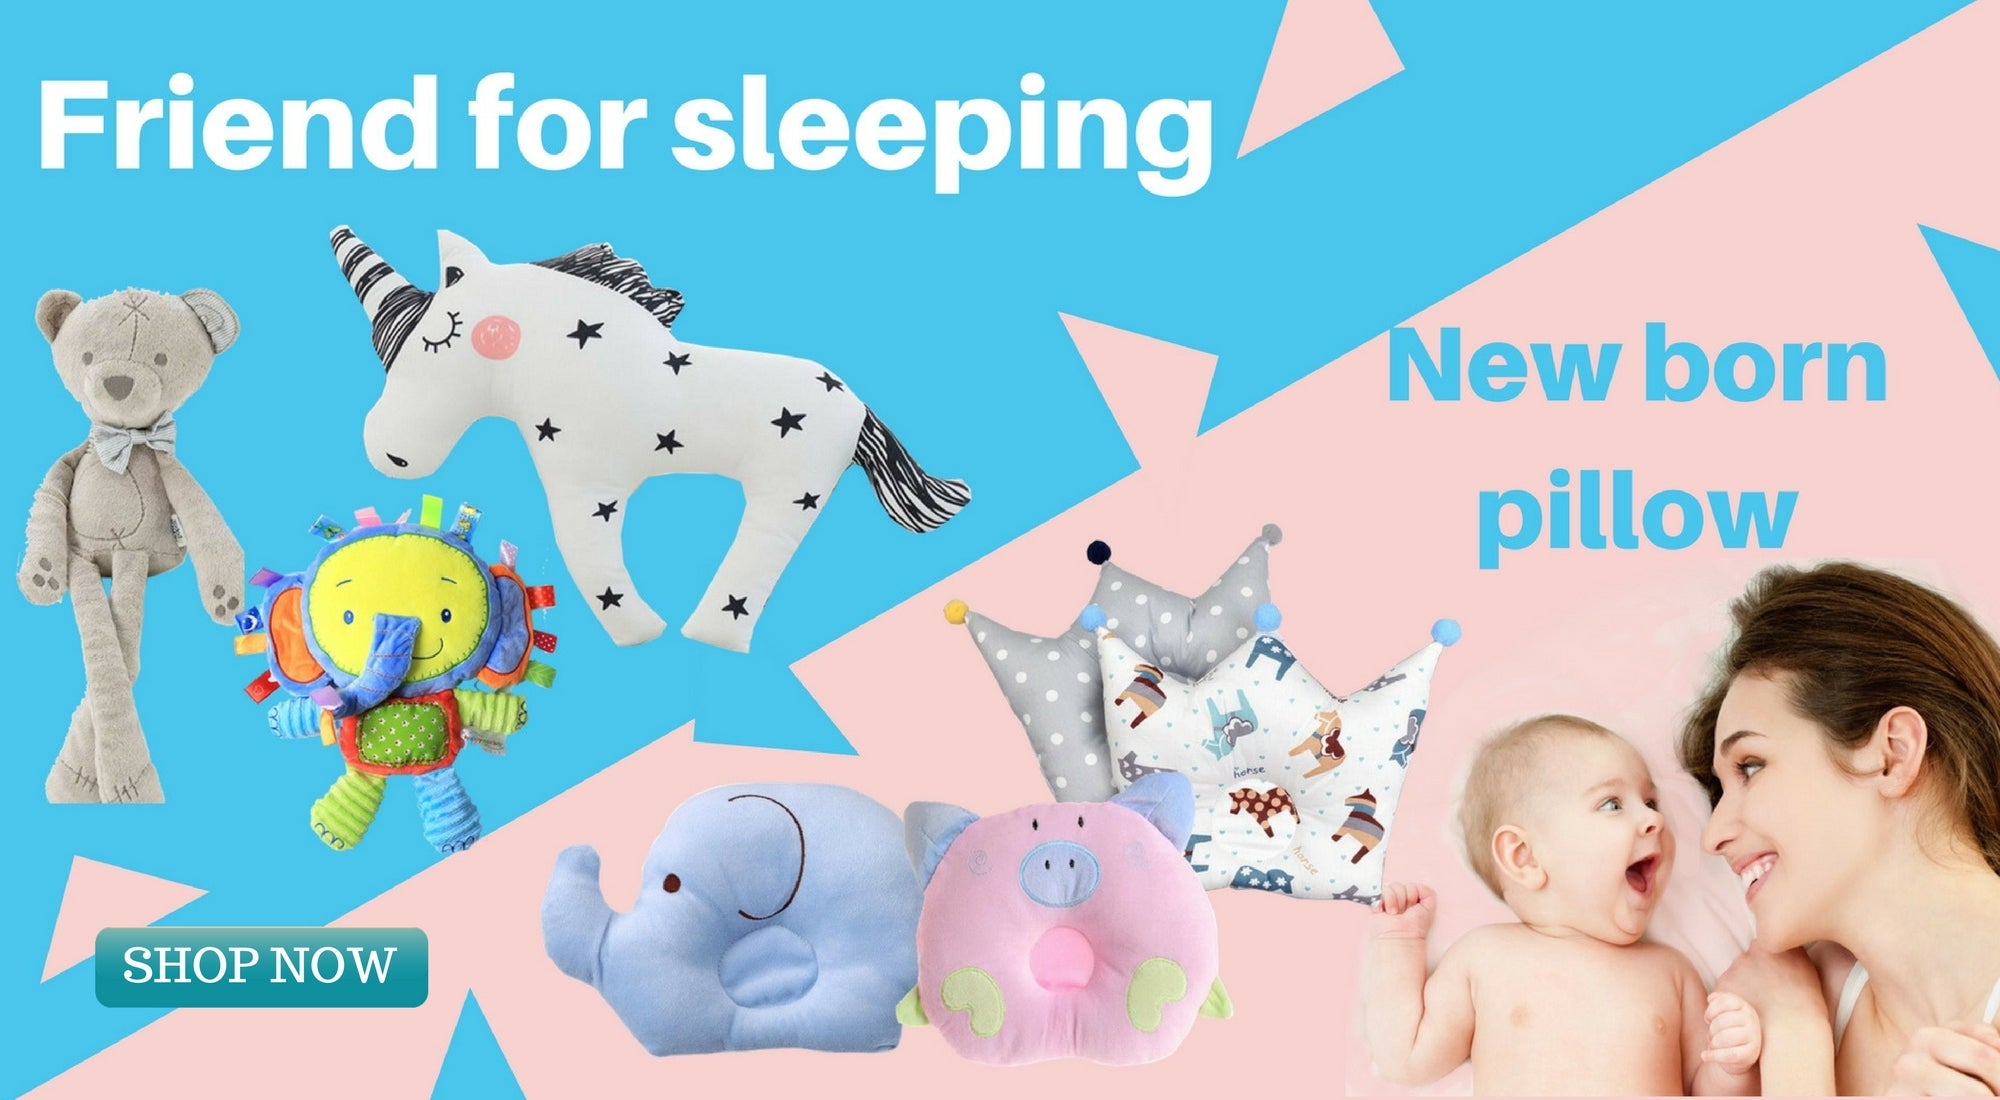 friend for sleeping special orthopadic new born pillow SHOP NOW